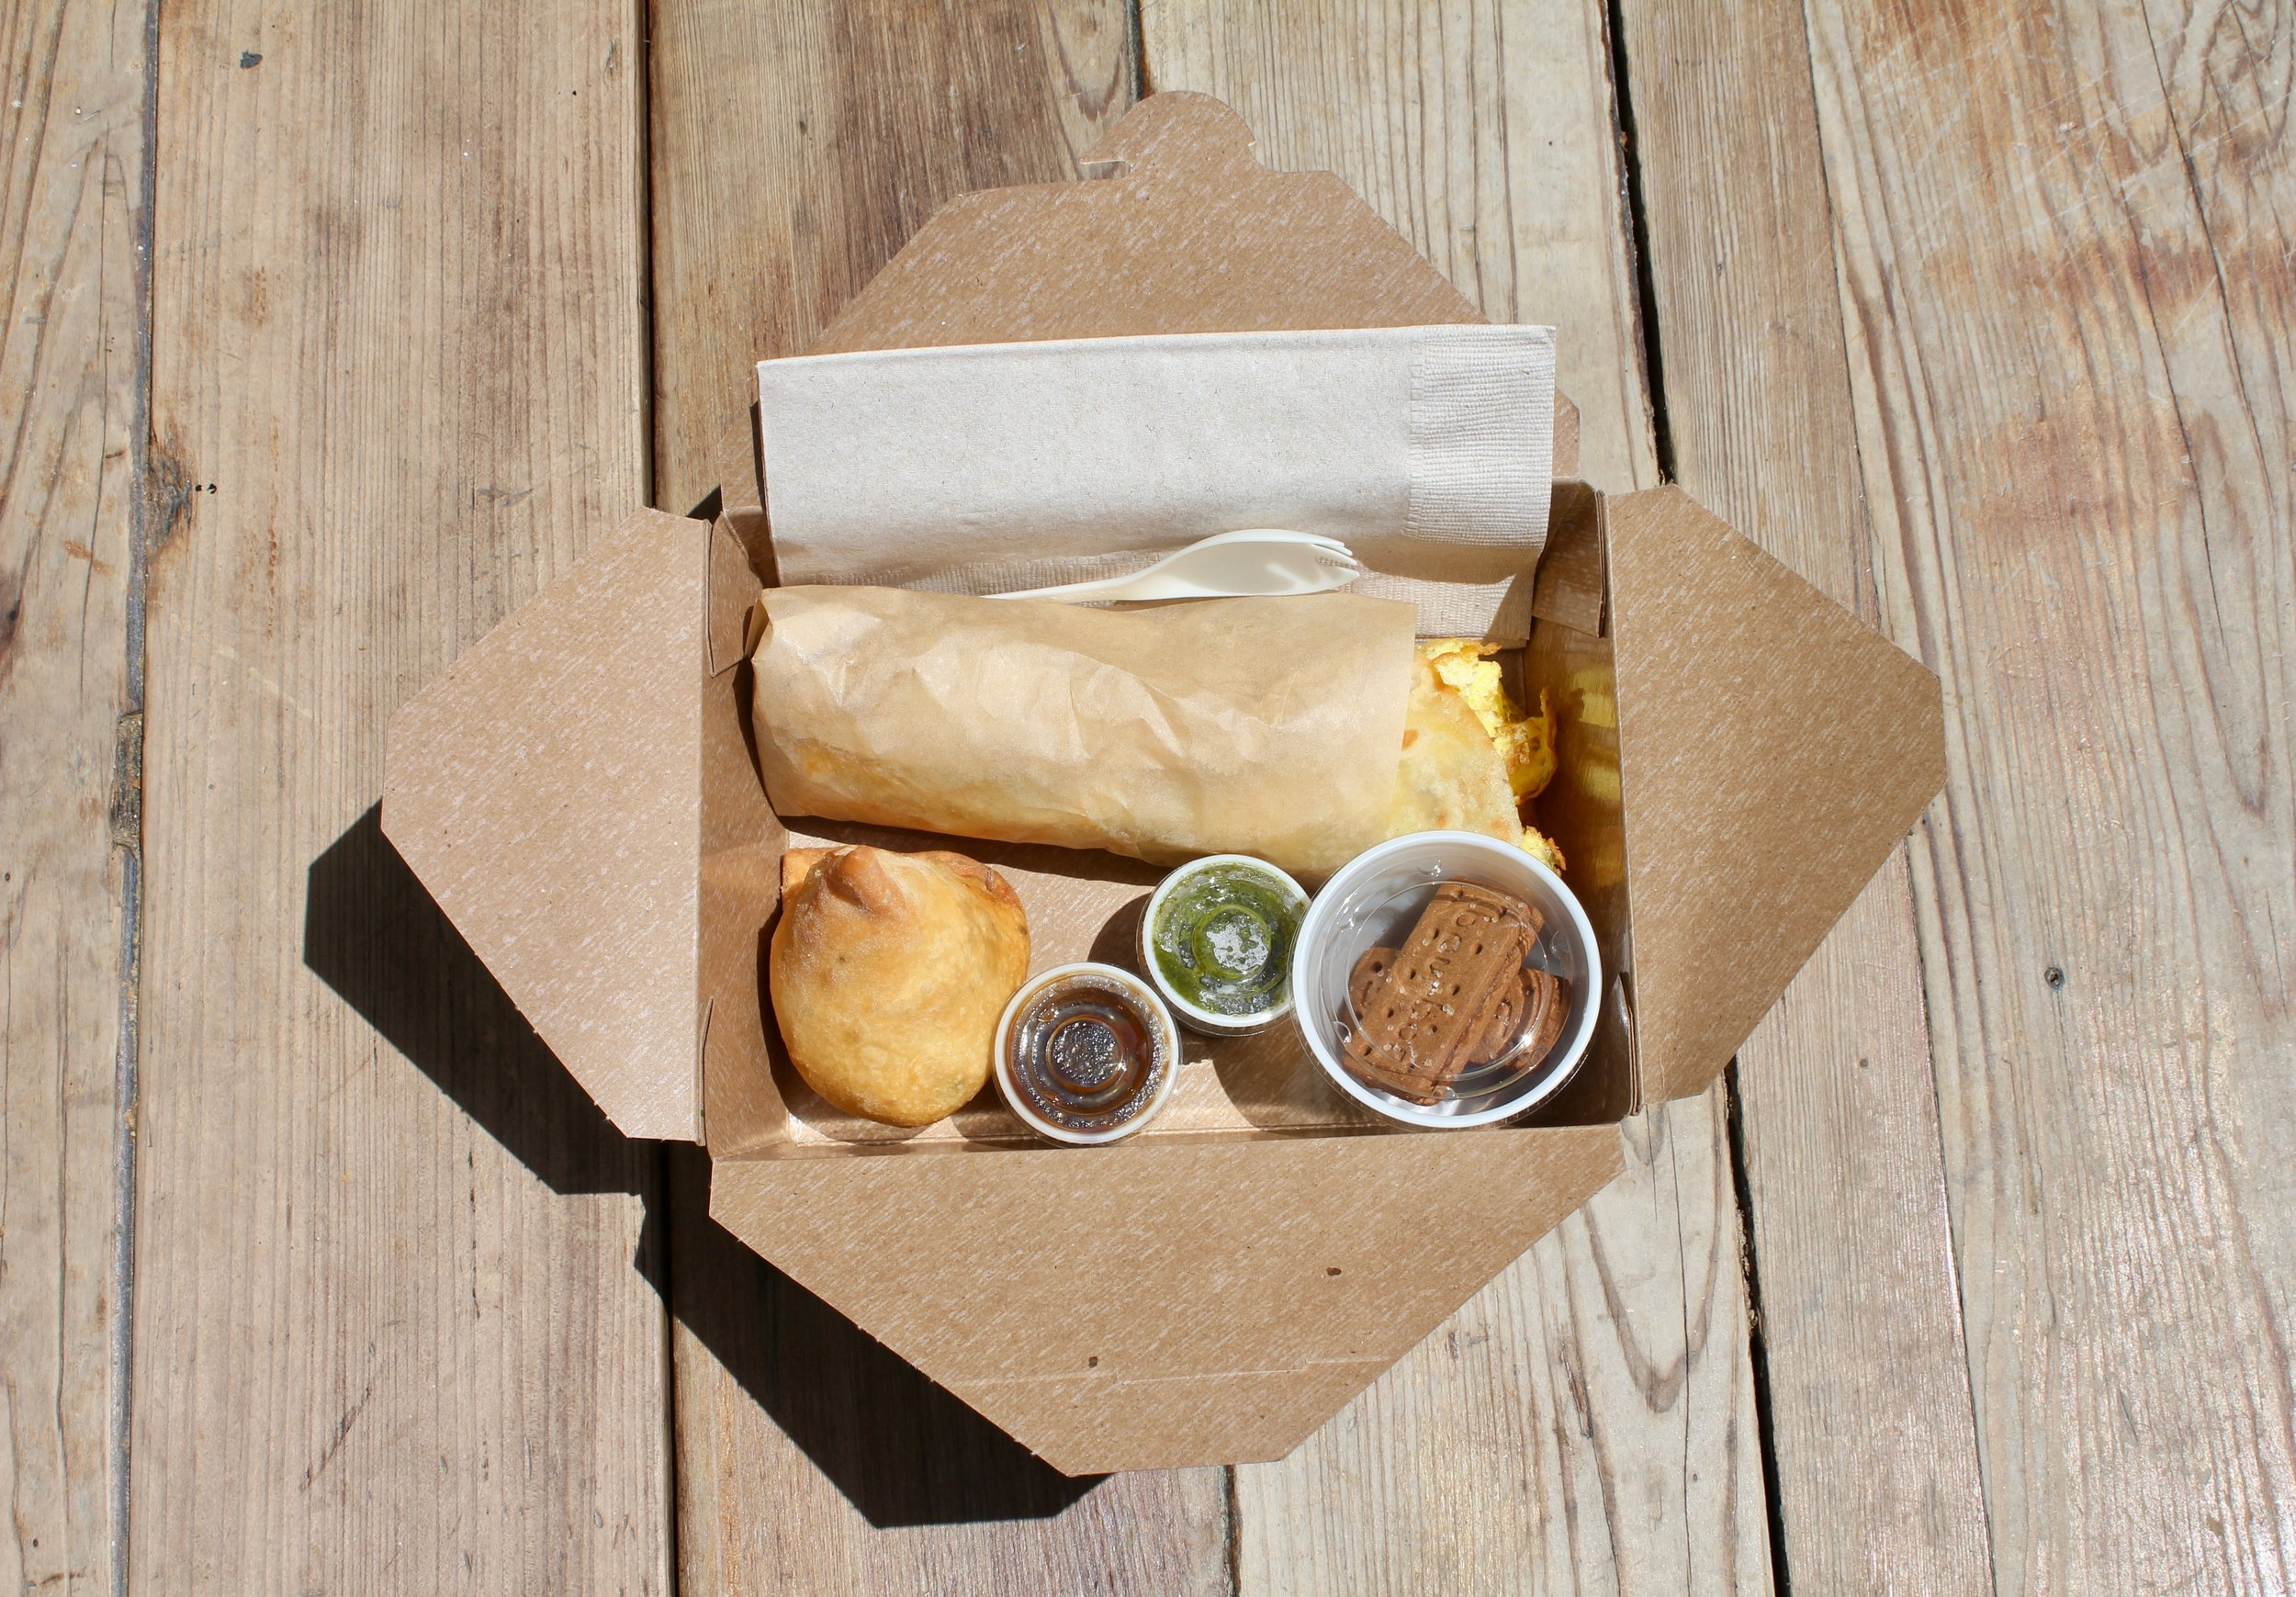 KATHI ROLL BOX    $13.5/person  each box includes a kathi roll, samosa w/chutneys and indian cookies  ask to exclude egg (V)    choice of:    chicken paneer (VG) vegan plant protein (VG, V - no egg) aloo gobi (VG, V - no egg) lamb ($1)